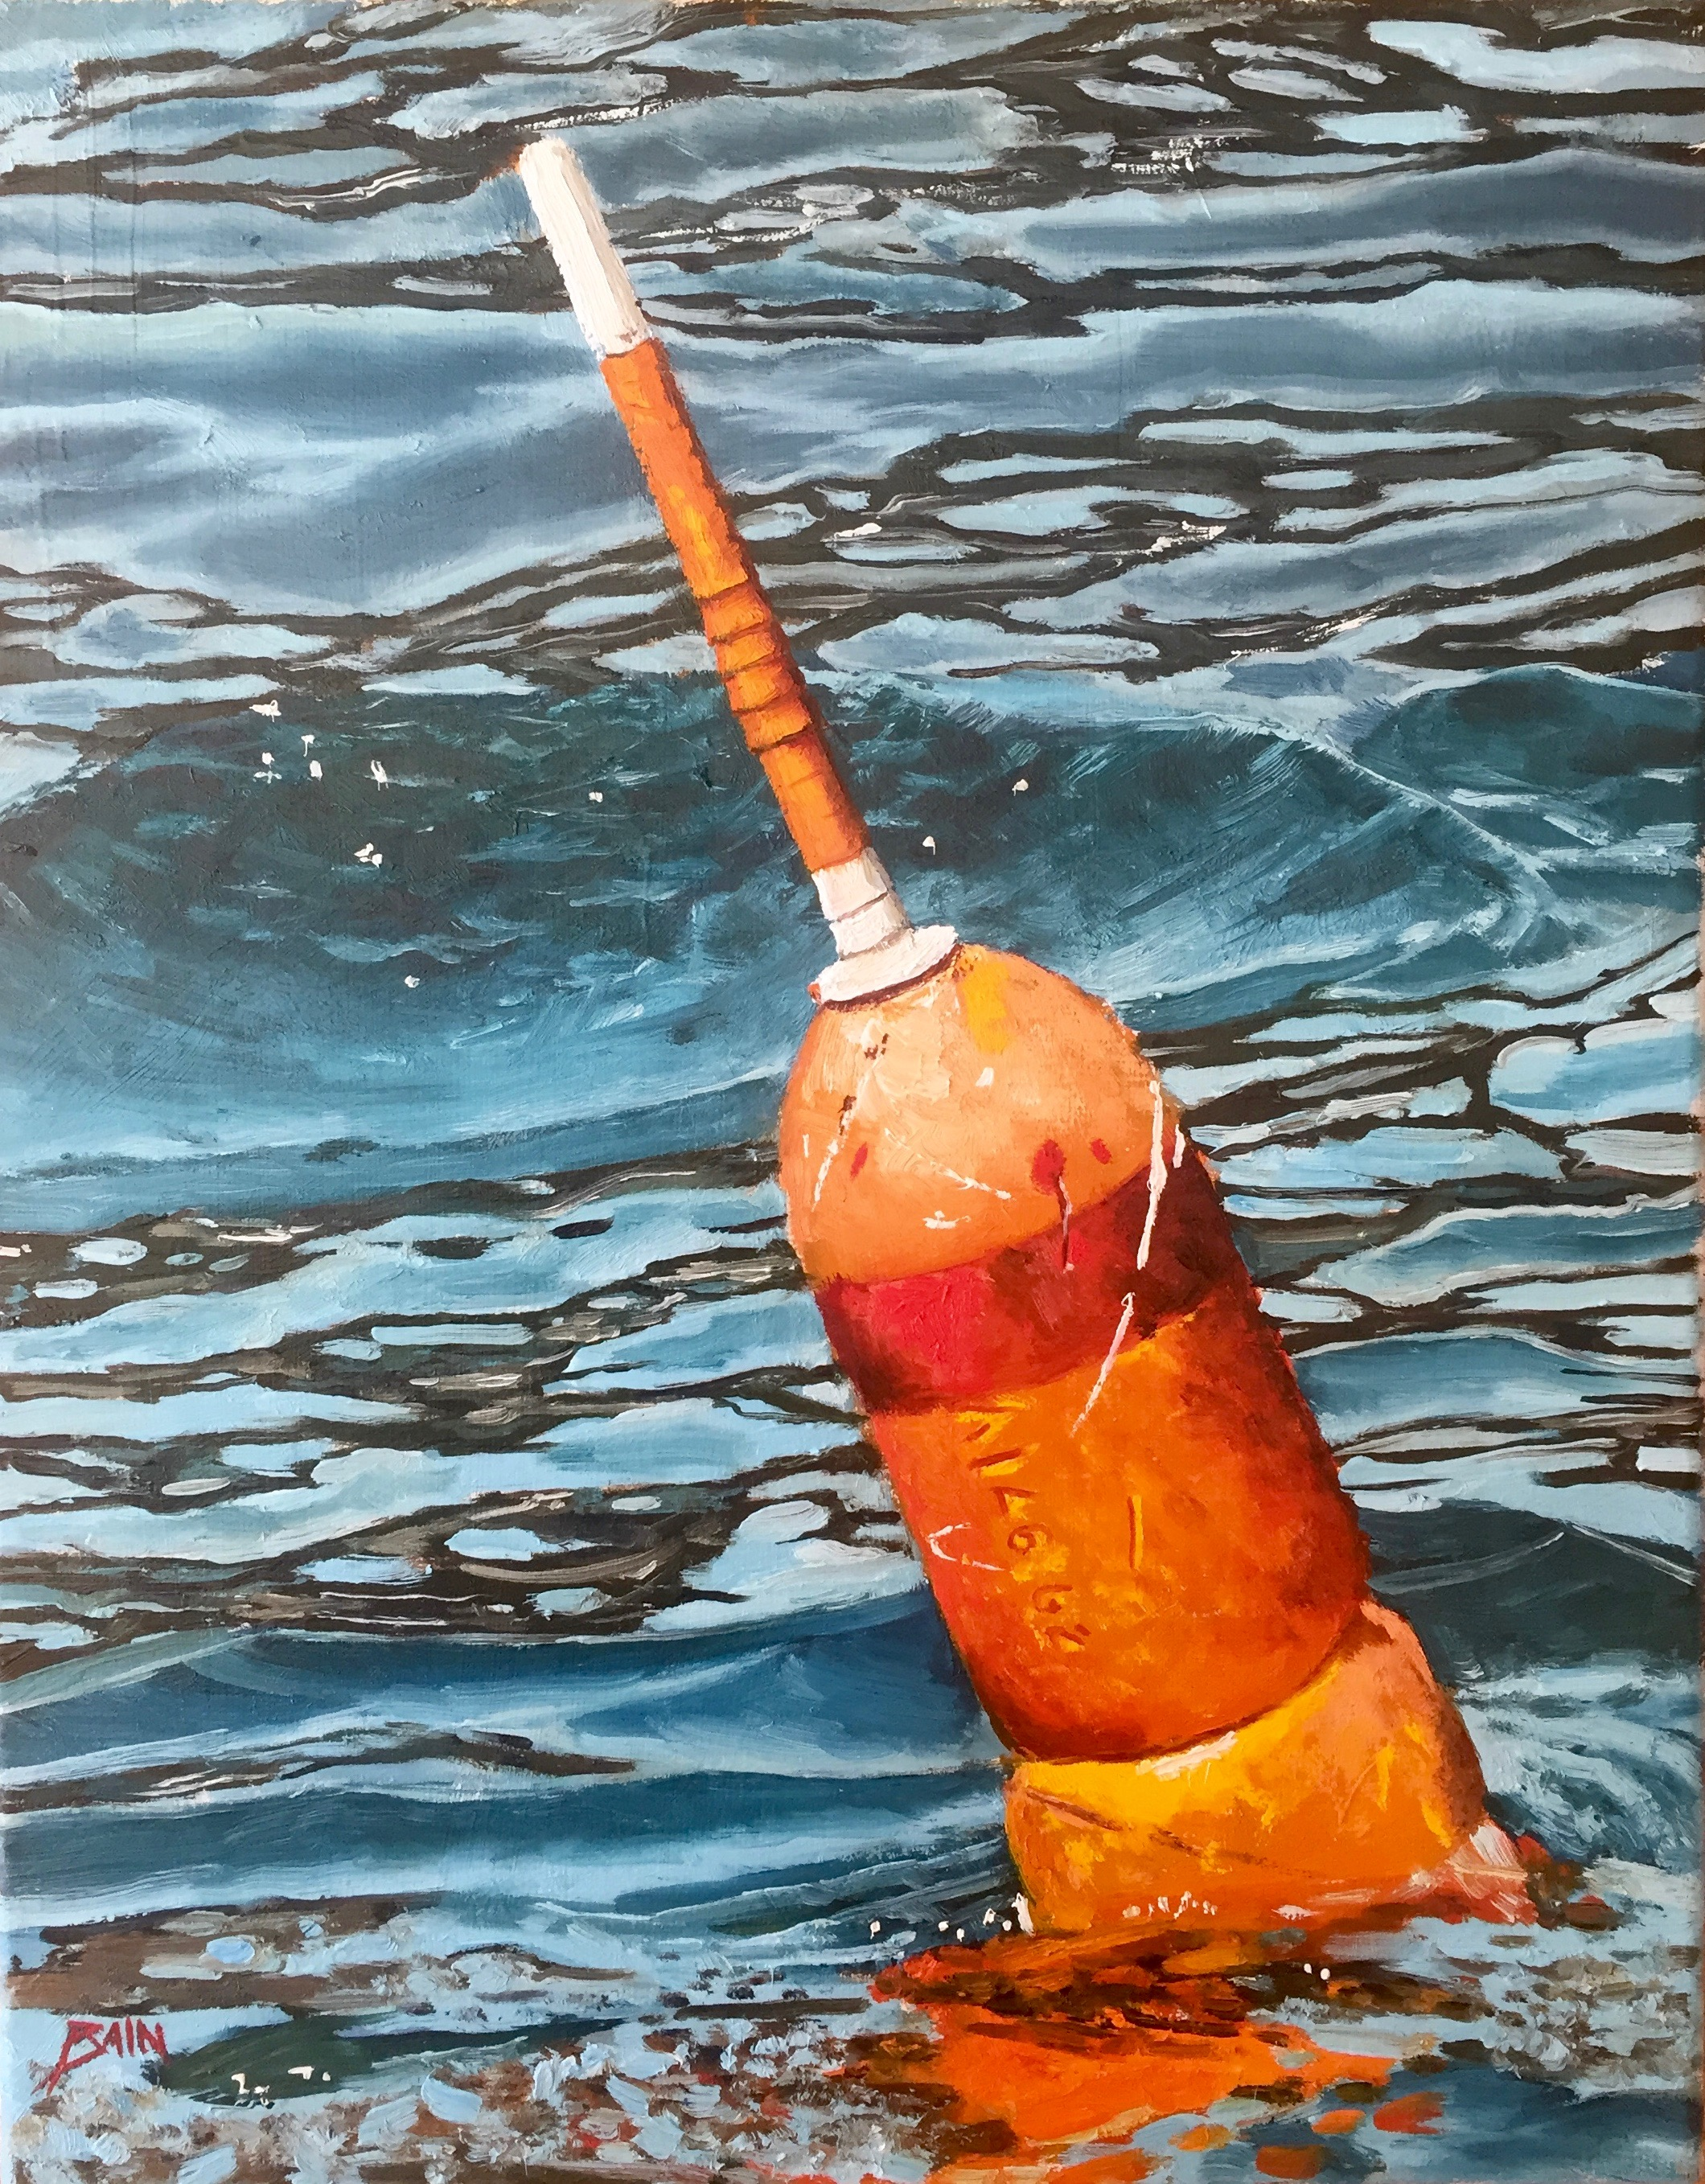 "<p><strong>PETER BAIN</strong>oil painting<a href=""/peter-bain"">More →</a></p>"